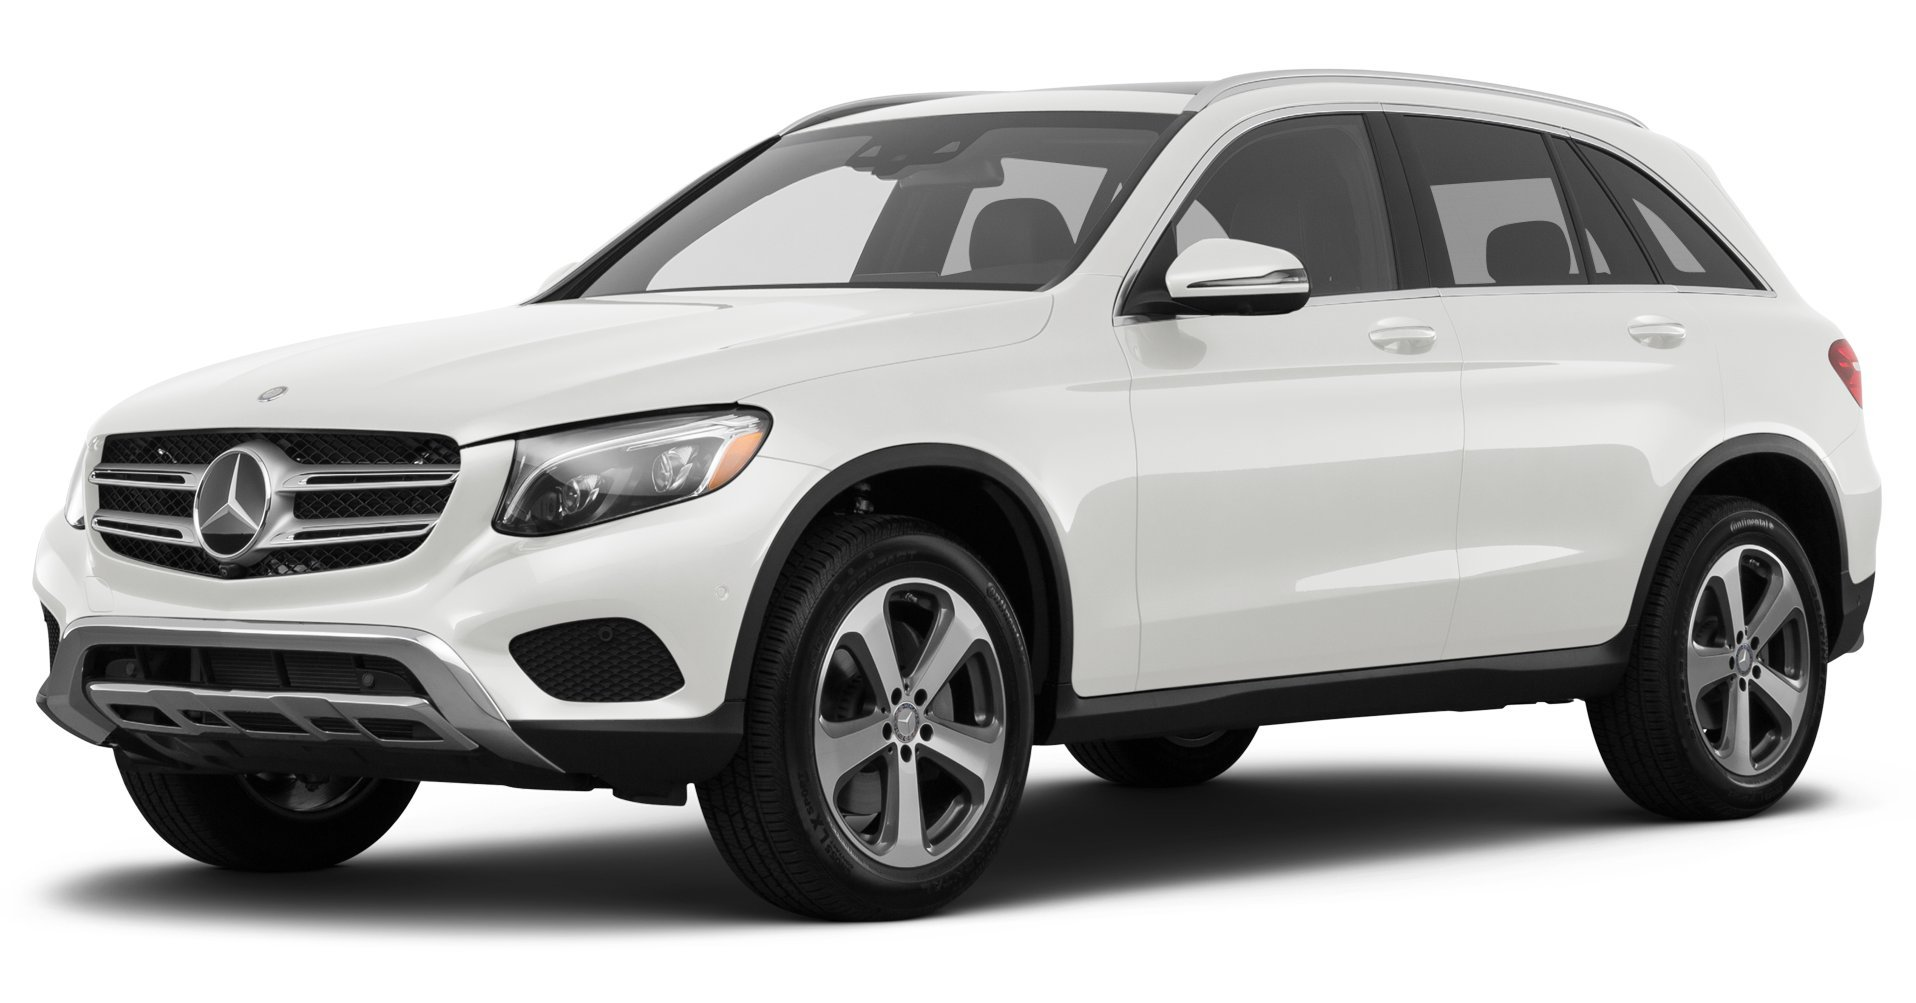 Amazon 2017 Mercedes Benz GLE350 Reviews and Specs